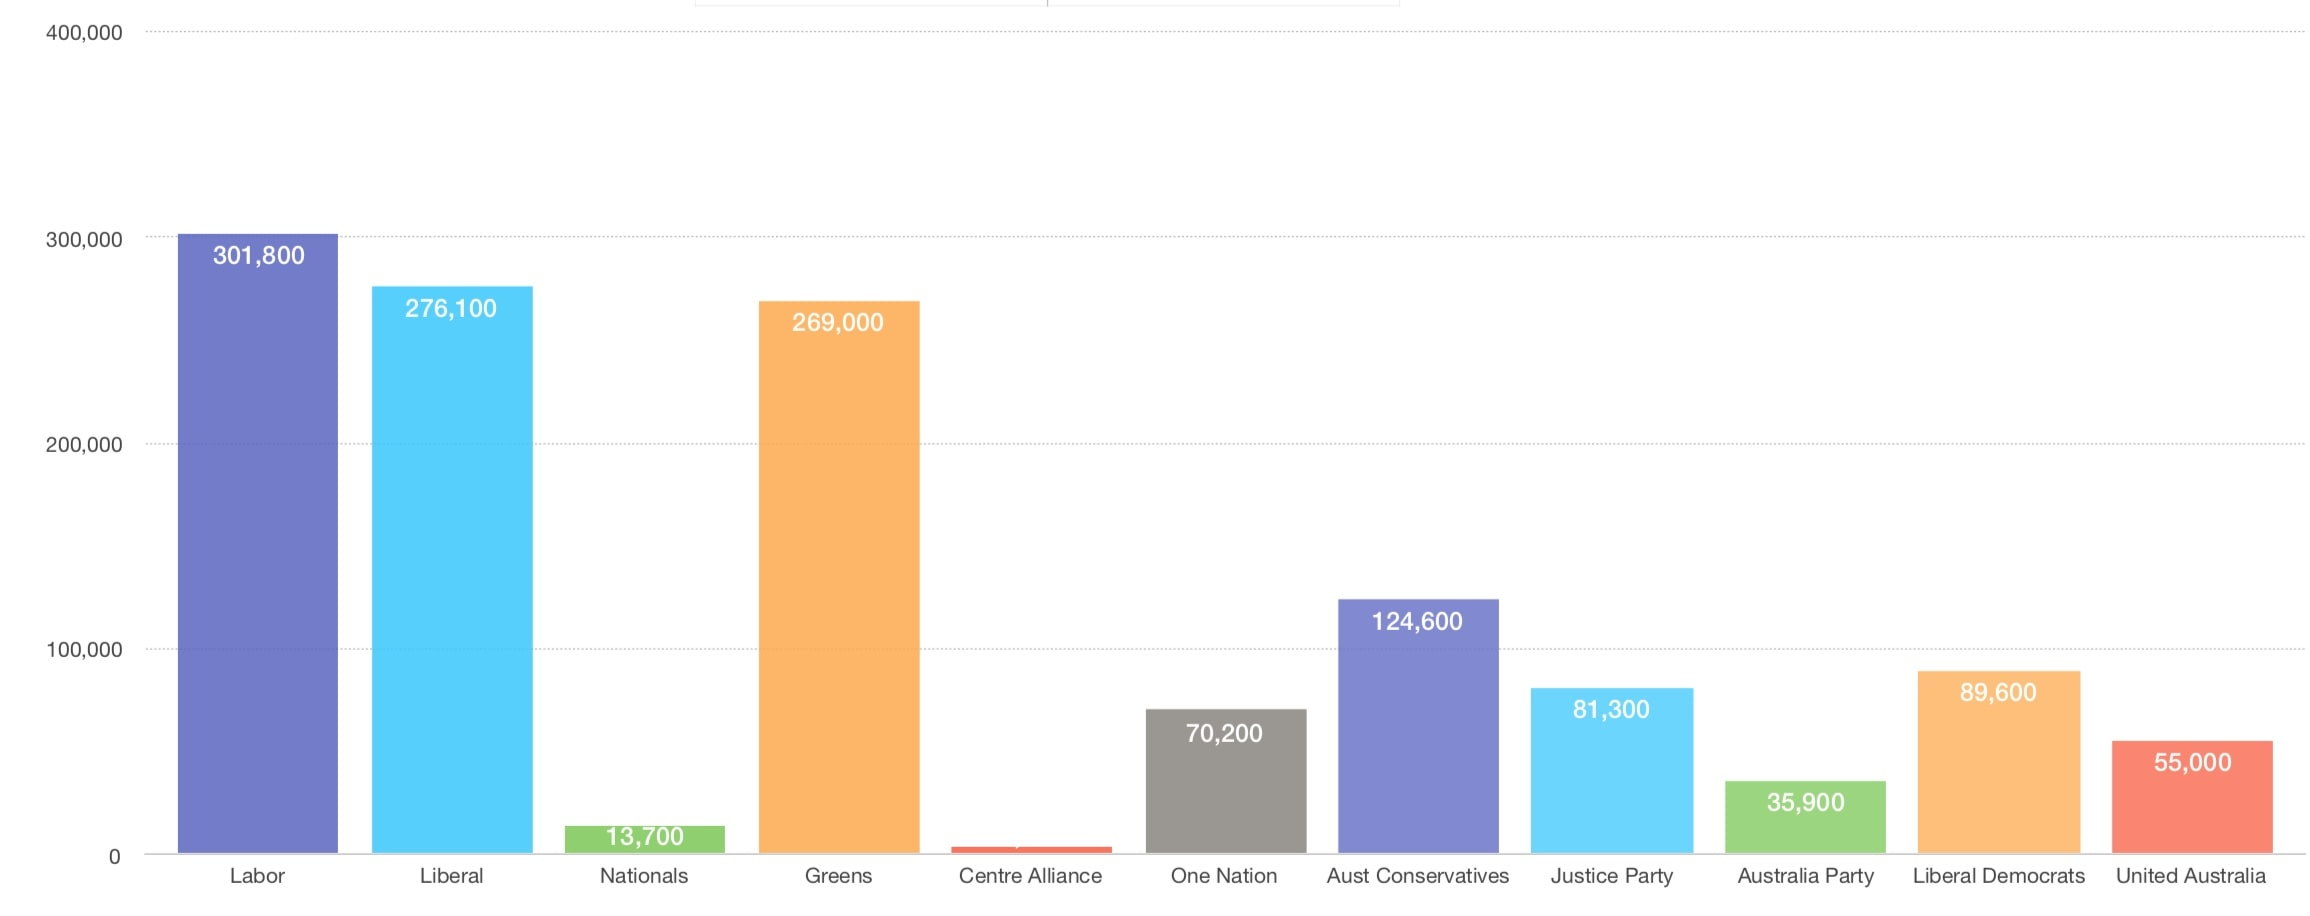 Facebook total page likes for Australian political parties